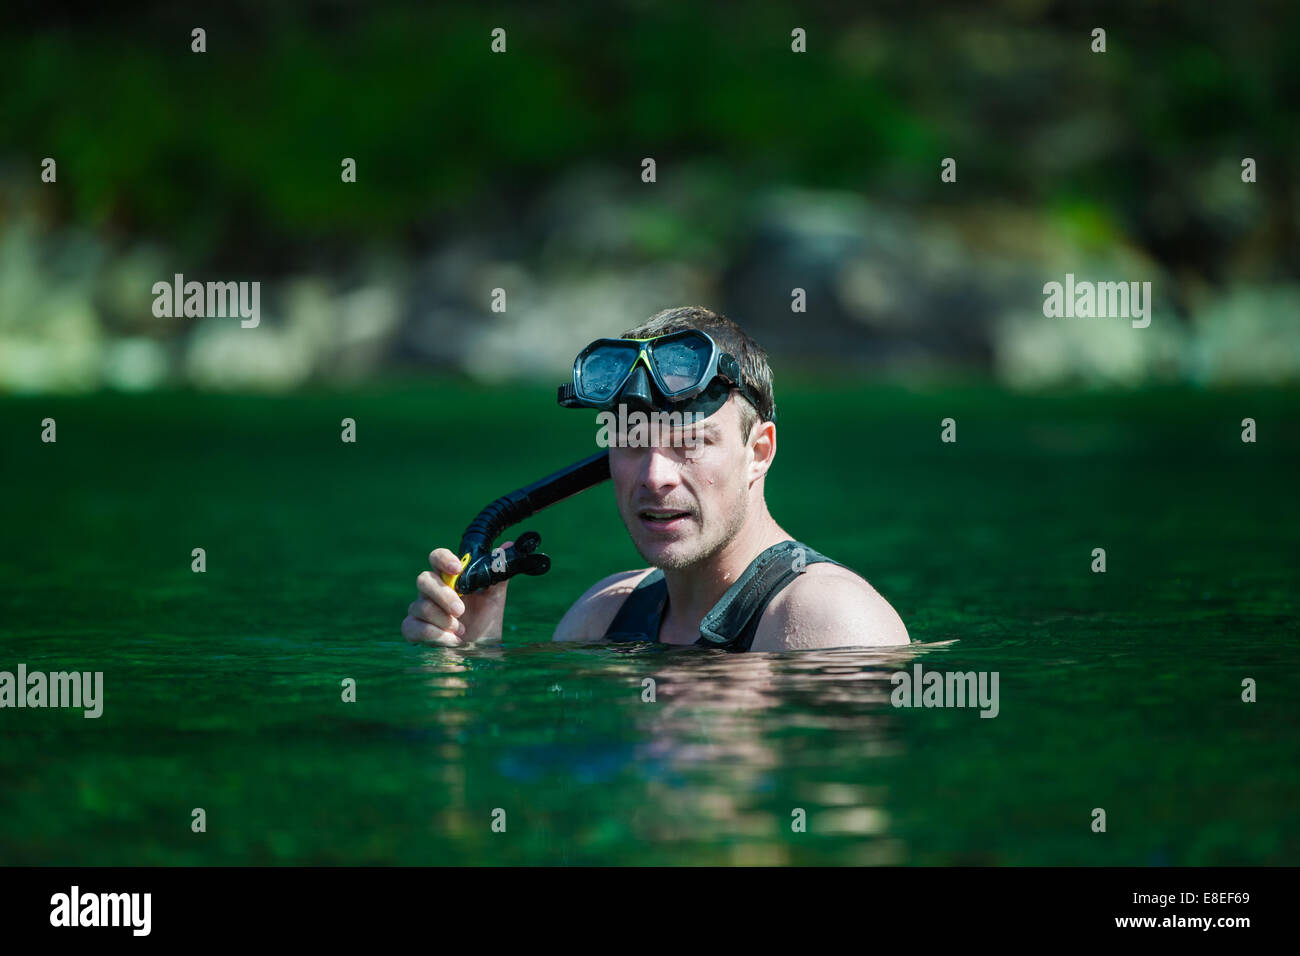 Young Adult Snorkeling in a river with Goggles and Scuba. - Stock Image